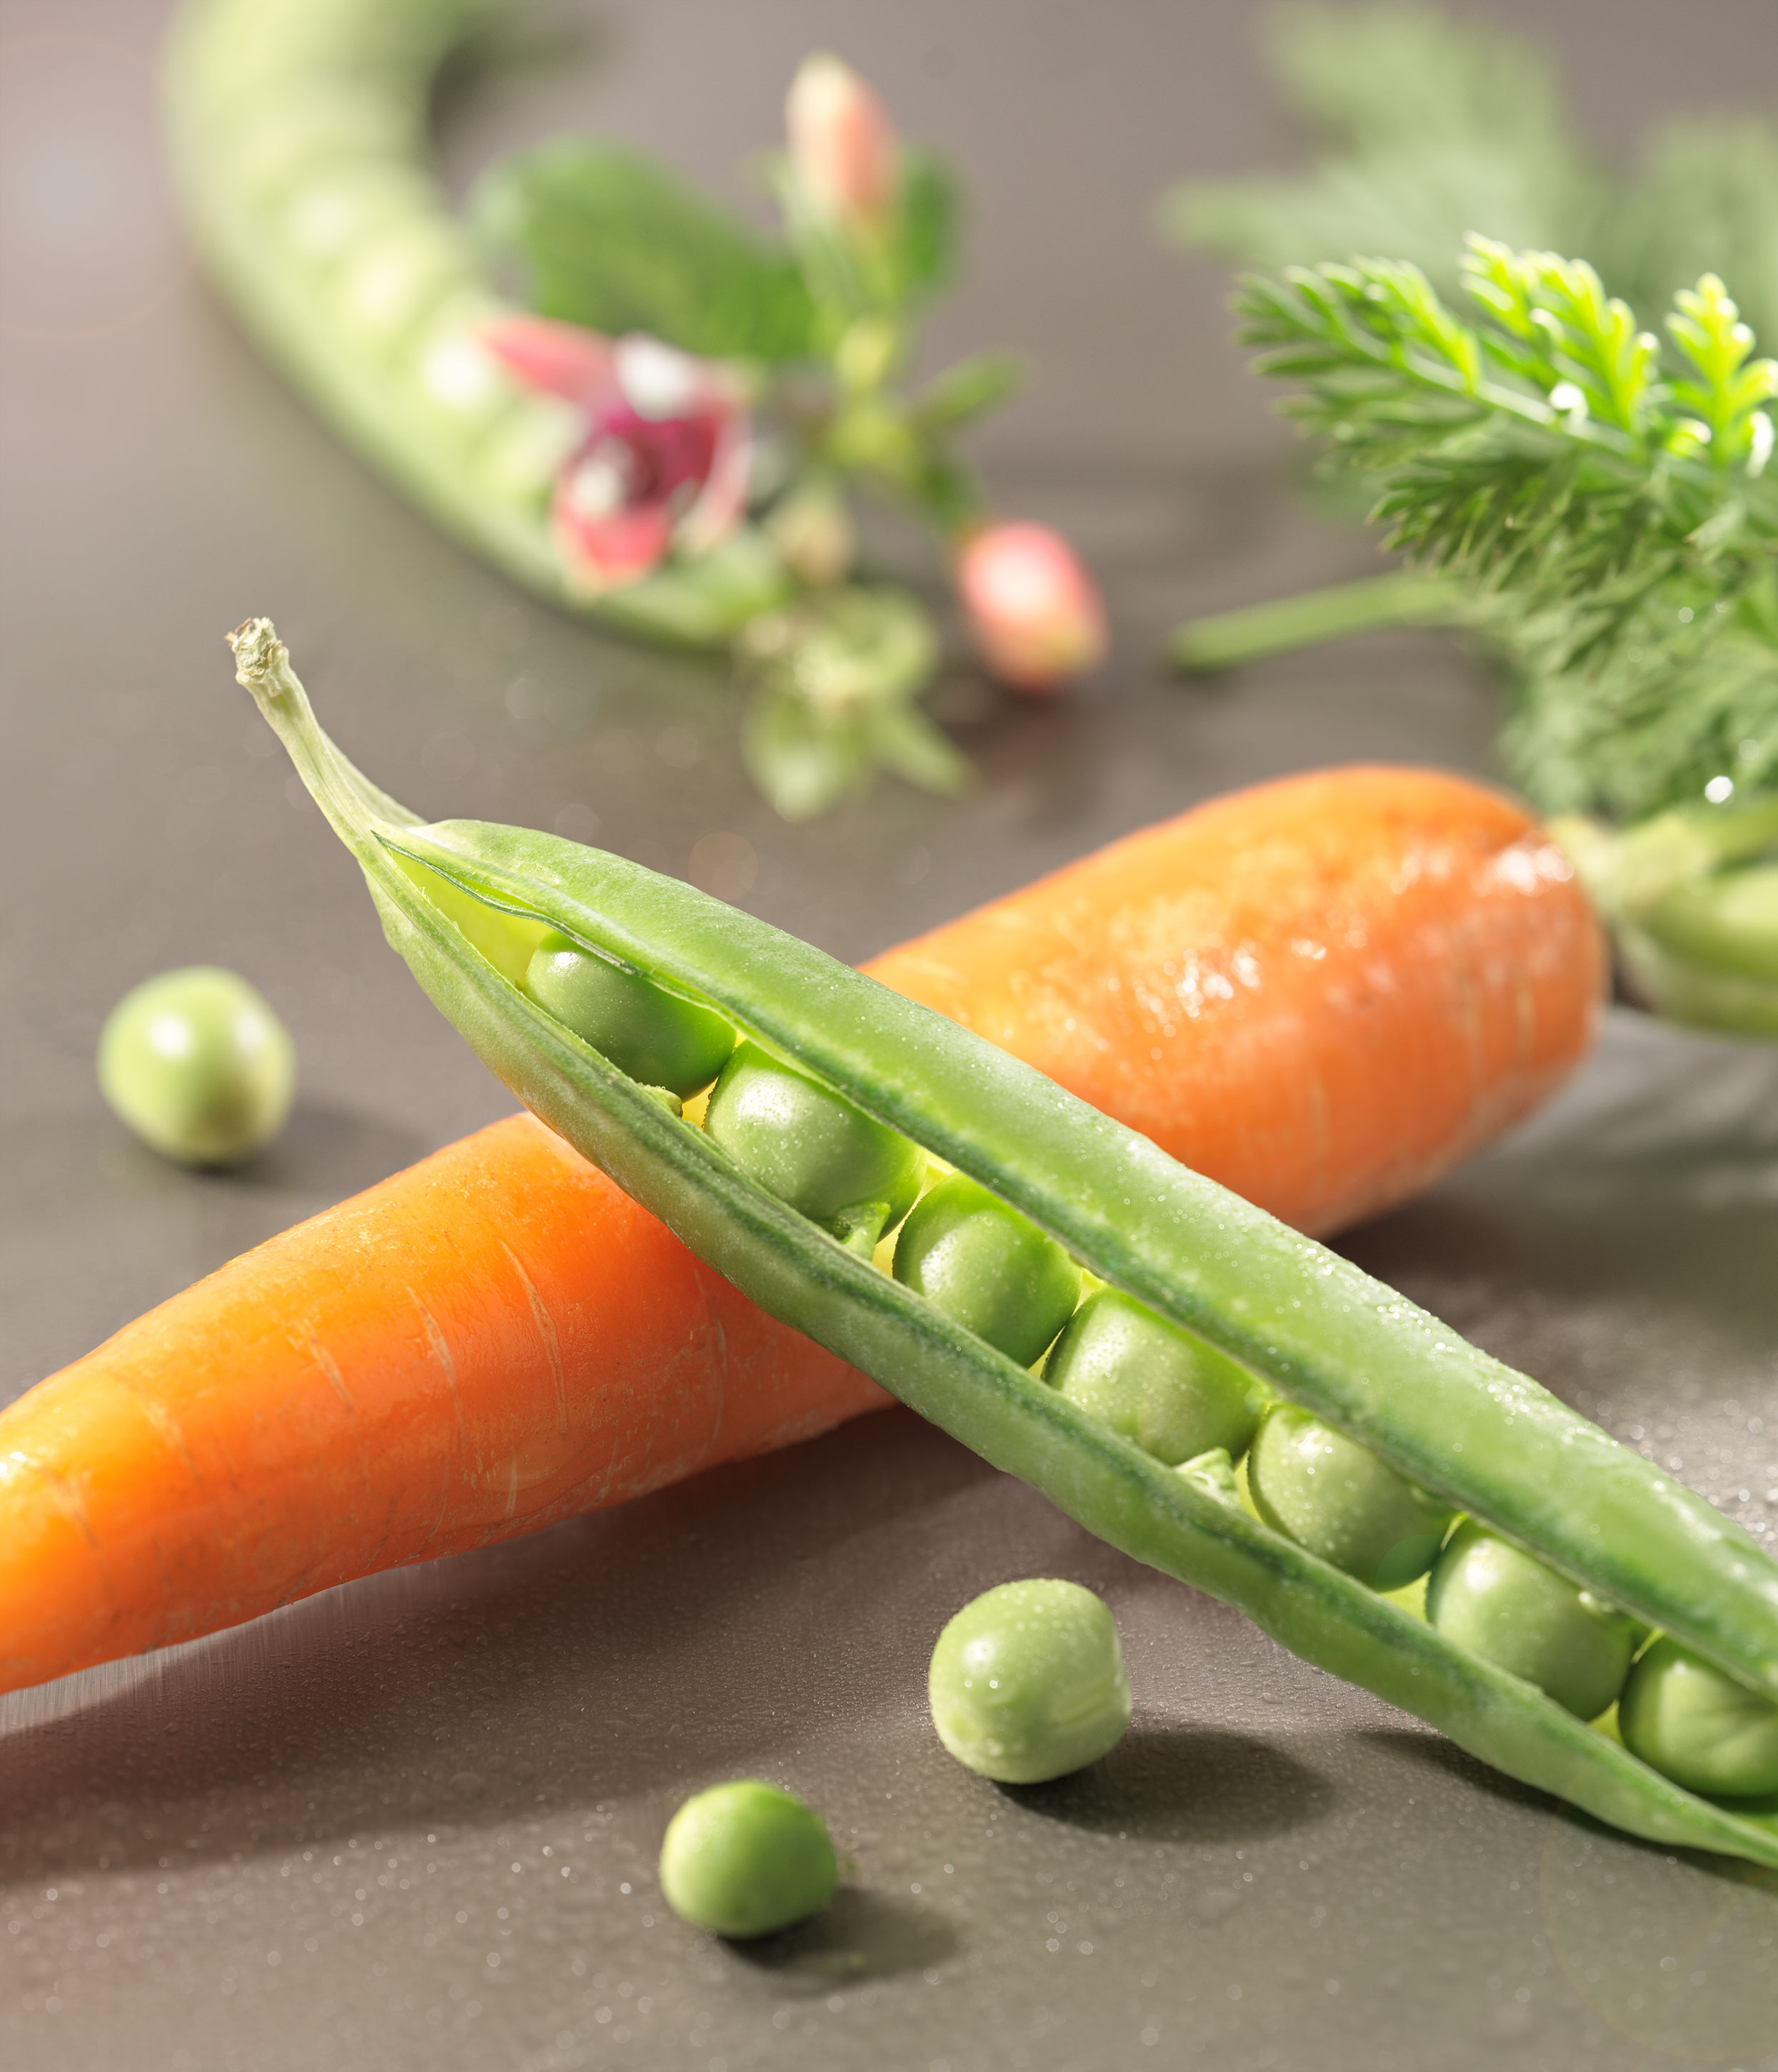 Peas and Carrots | Steve Hansen Images Seattle Food Photographer